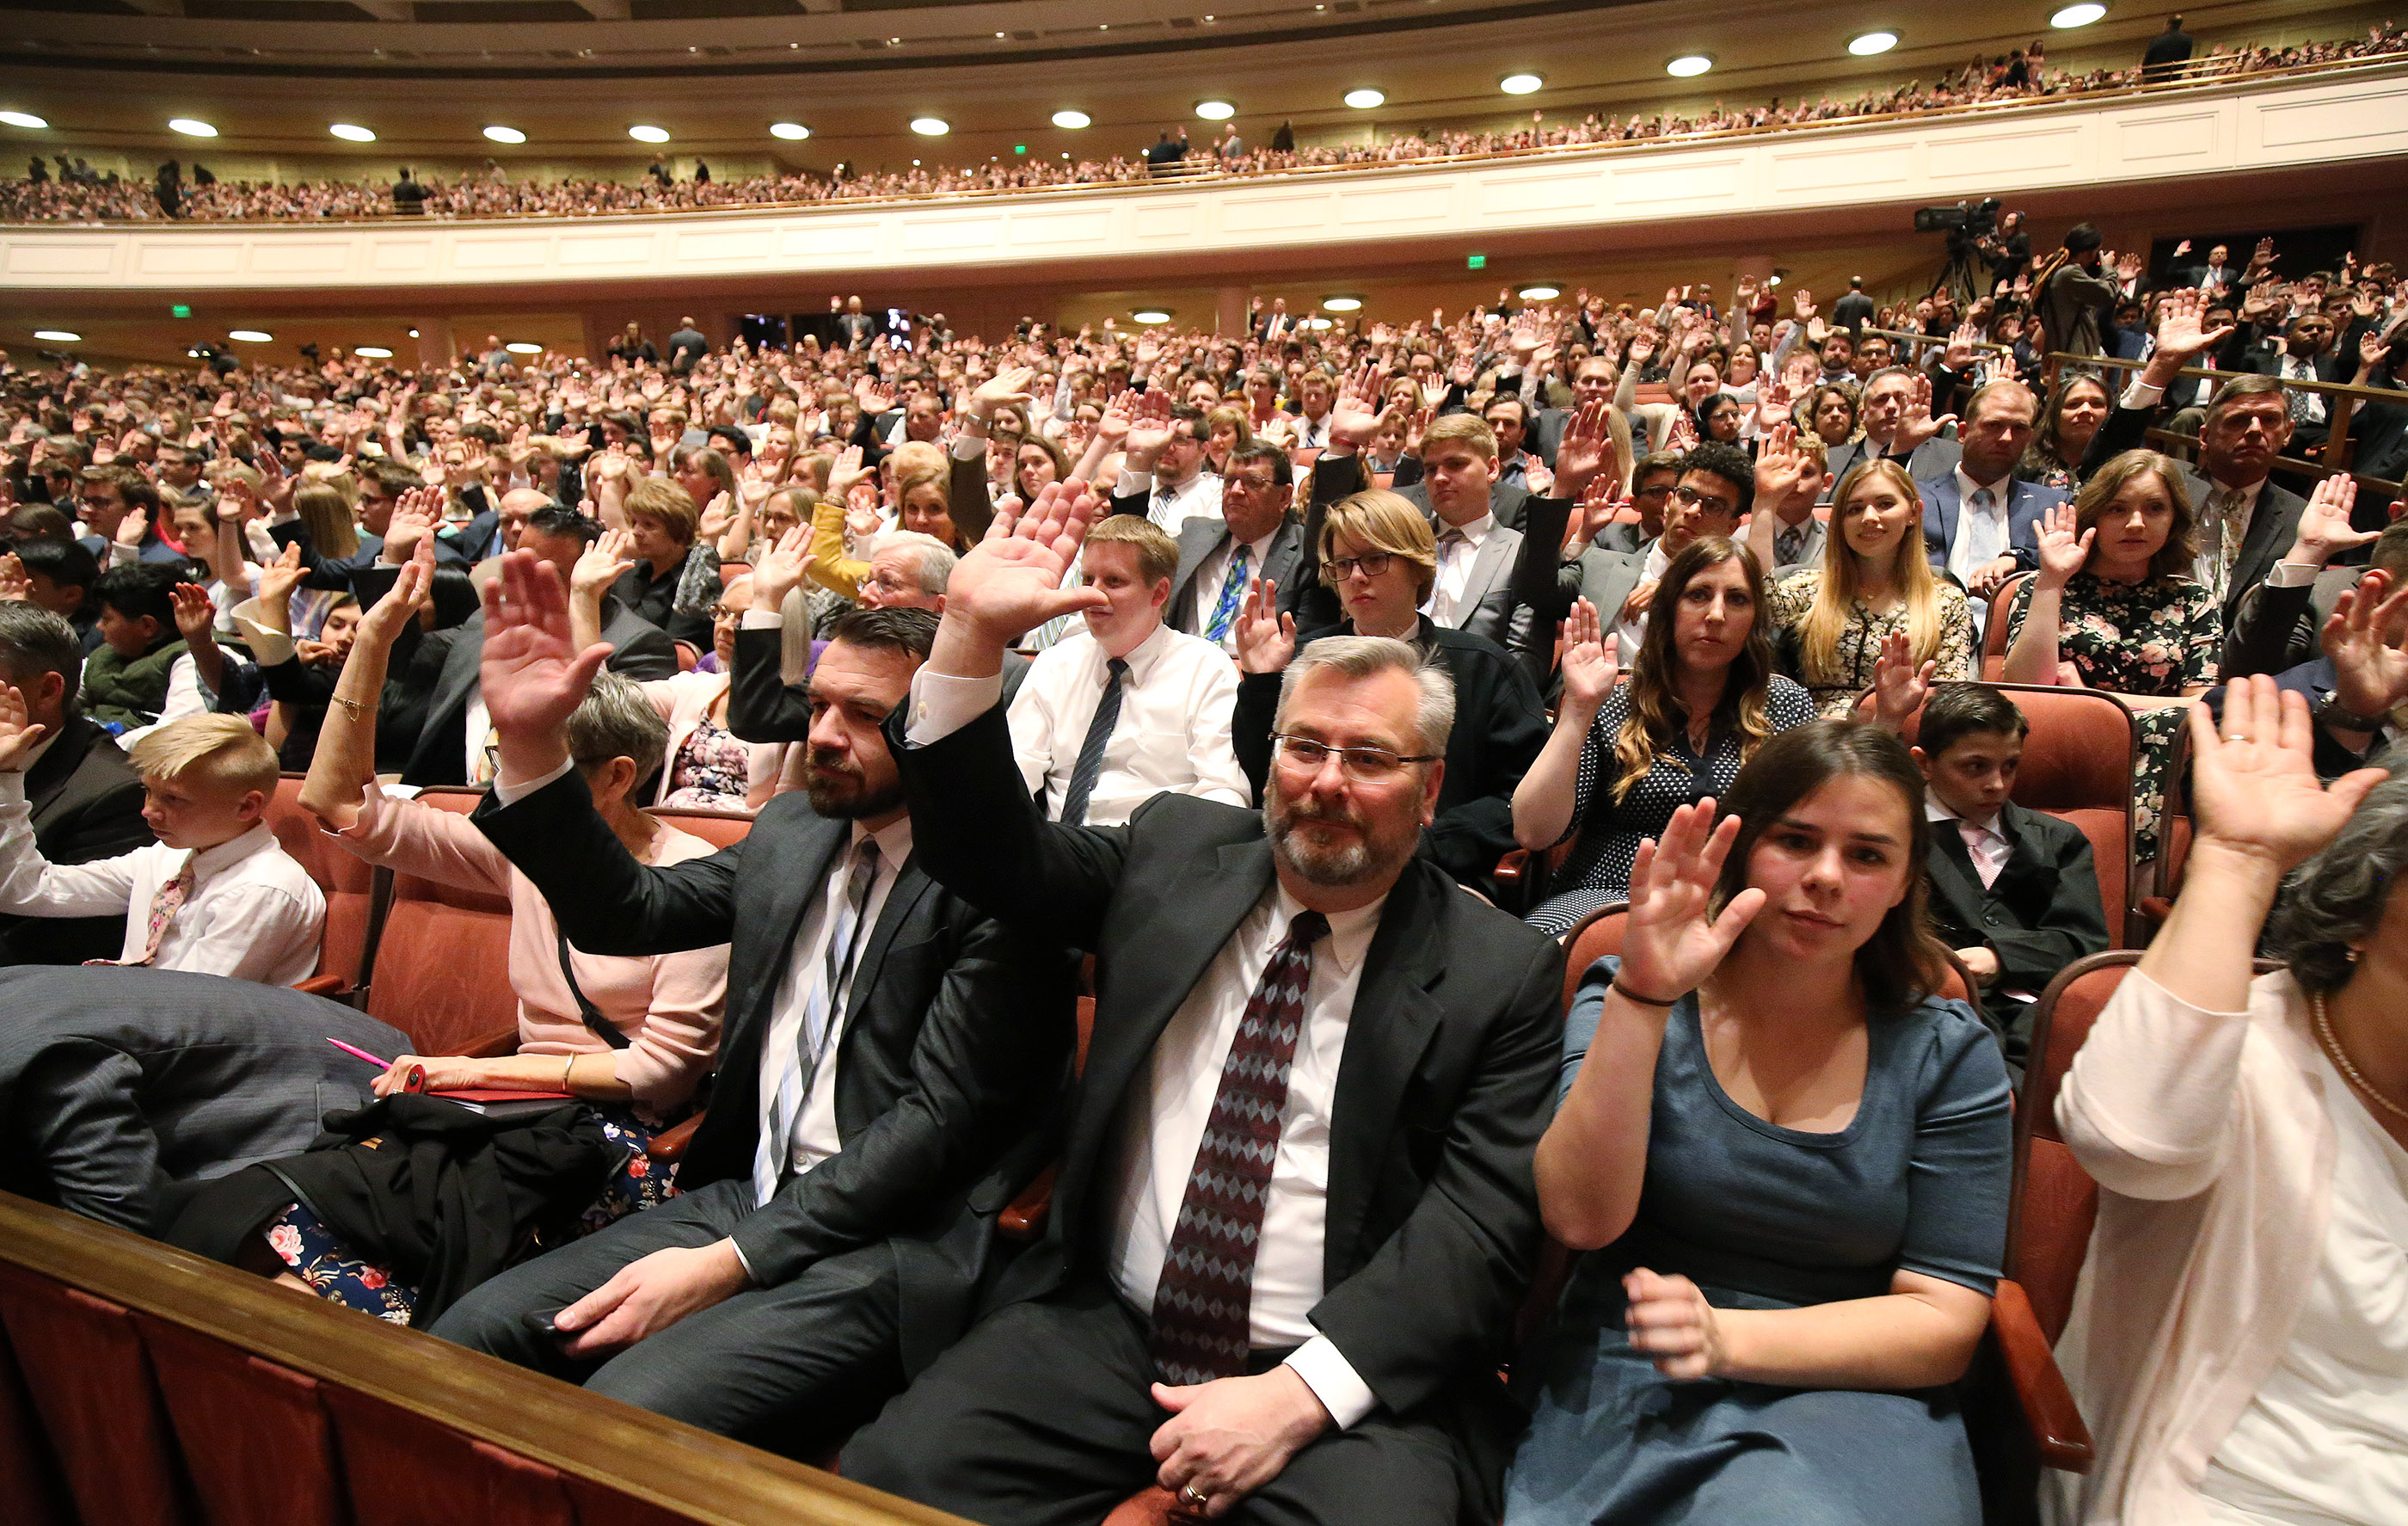 Attendees in the Conference Center sustain leaders during the Saturday afternoon session of the 189th Annual General Conference of The Church of Jesus Christ of Latter-day Saints in Salt Lake City on Saturday, April 6, 2019.